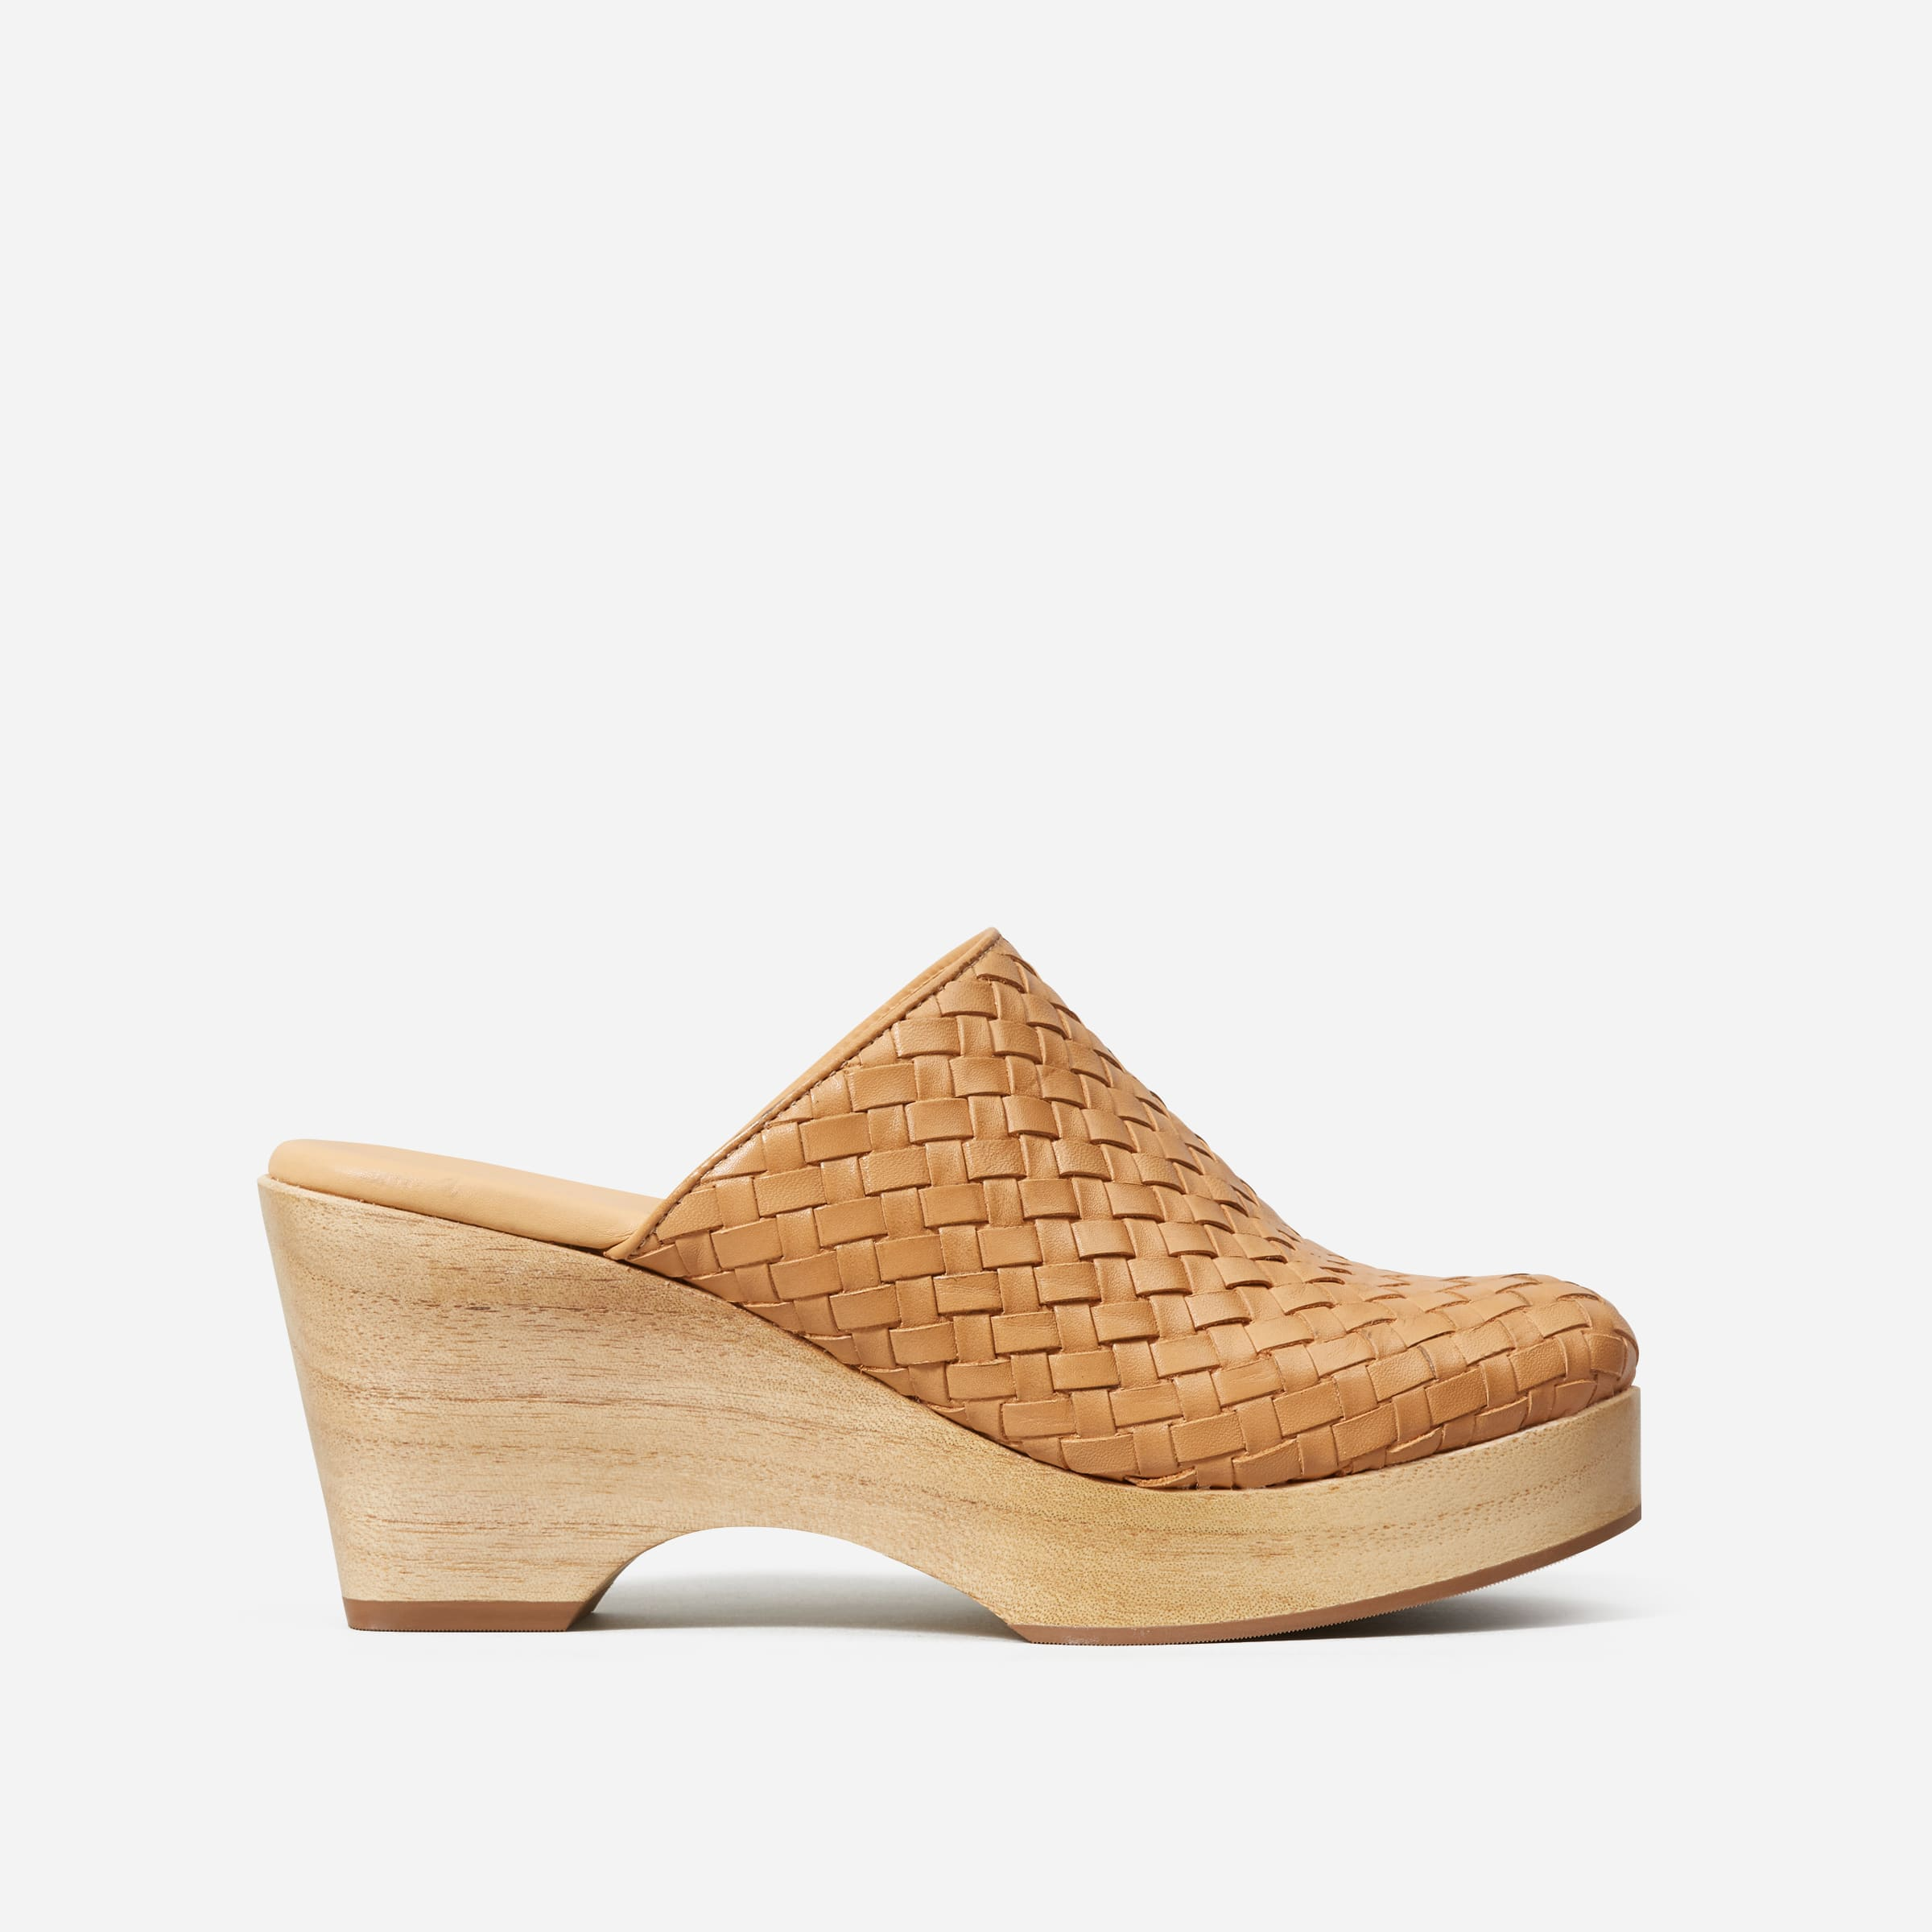 Women's Heels Slingbacks, Sandals & More – Everlane